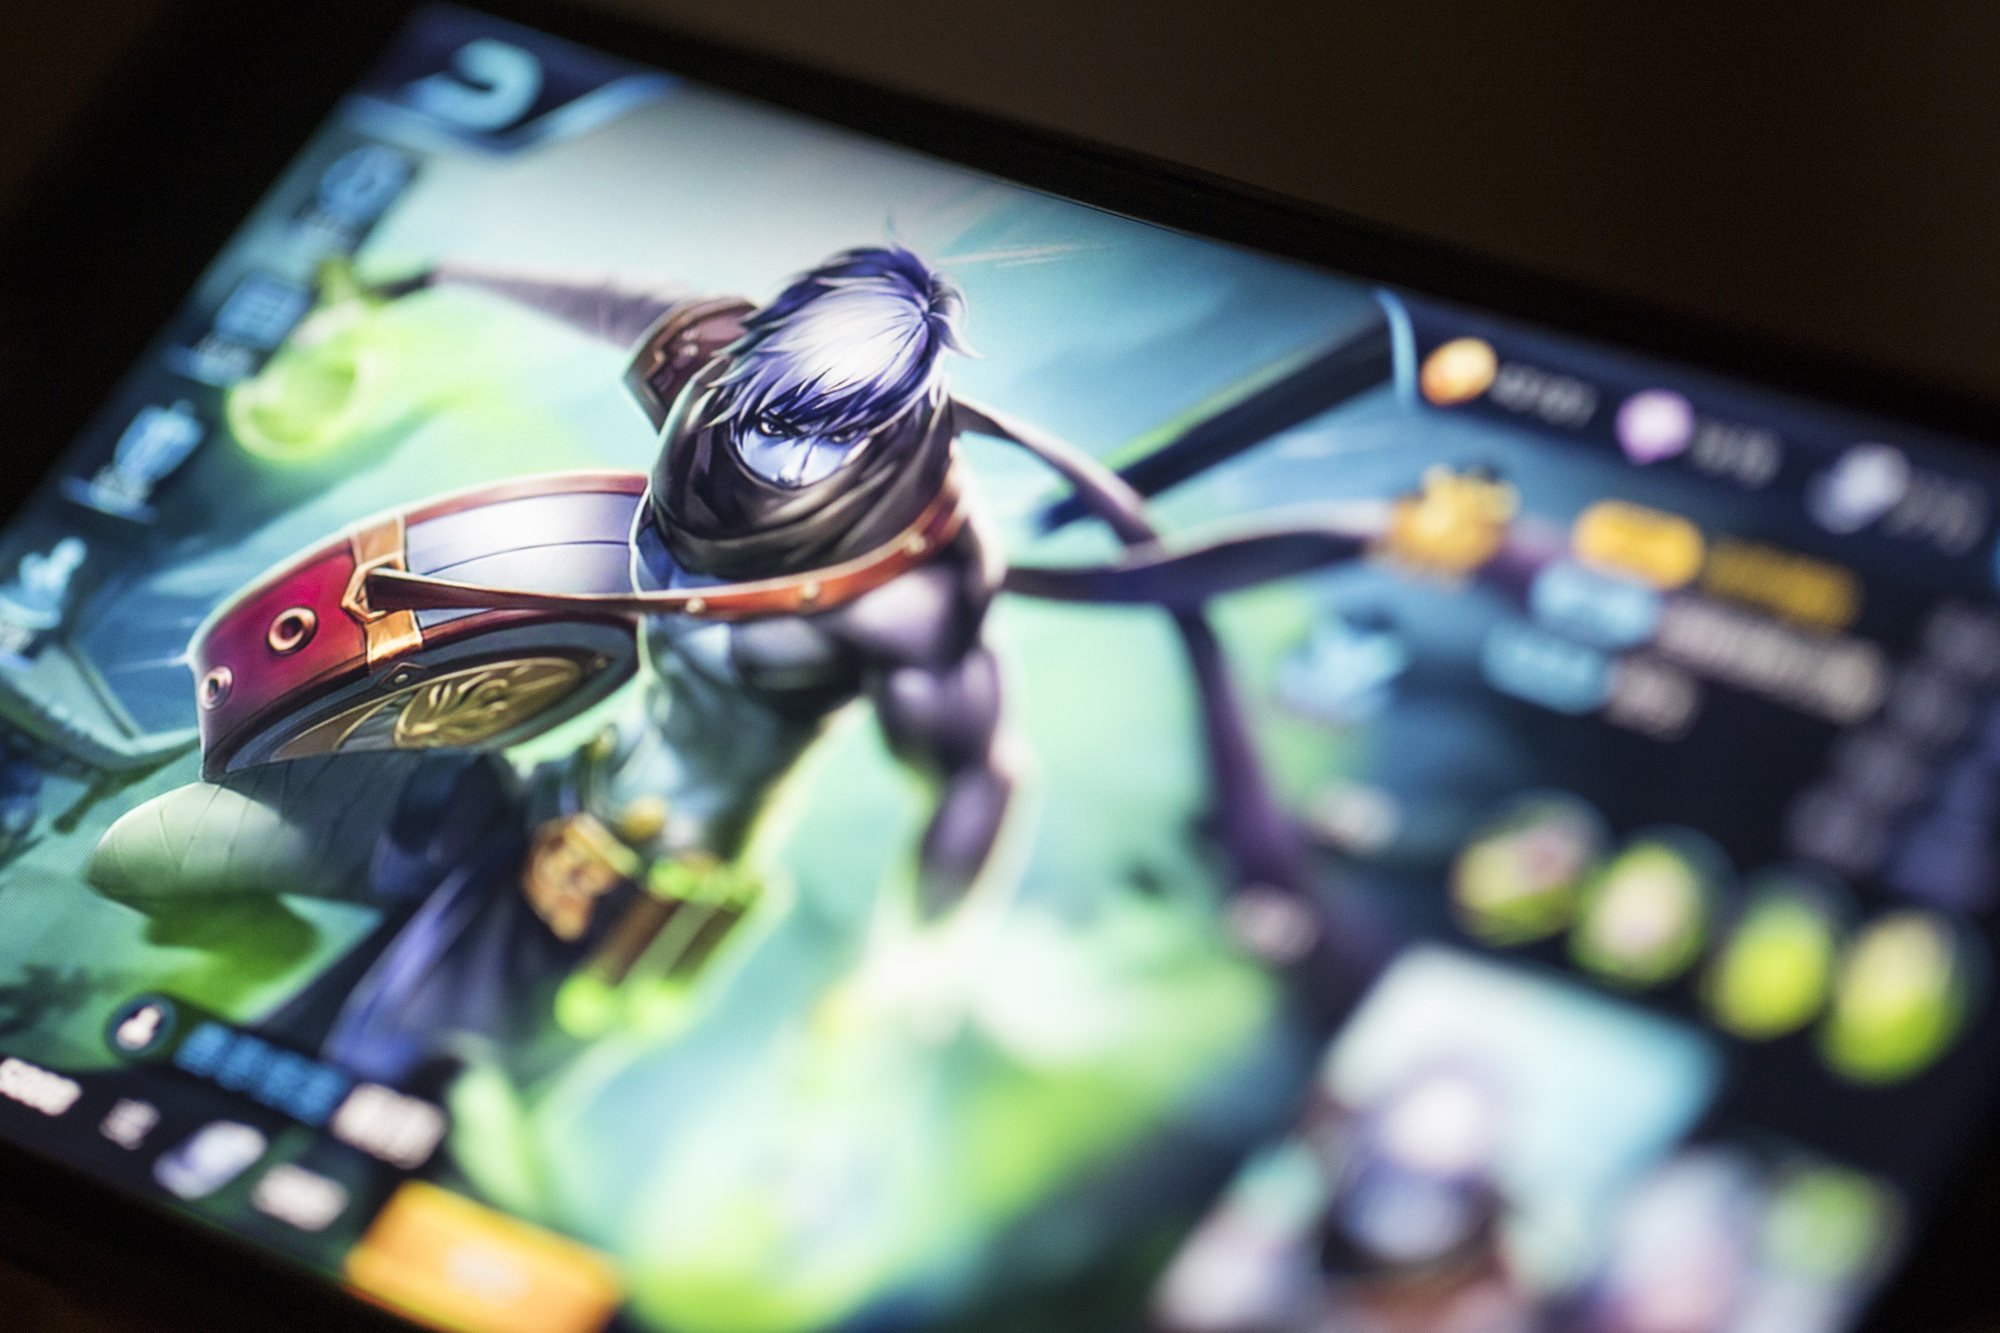 Tencent was an early adopter of facial recognition and real-name registration as a way of curbing underage gaming, first implementing it in its hit game Honour of Kings in 2018. Photo: Bloomberg